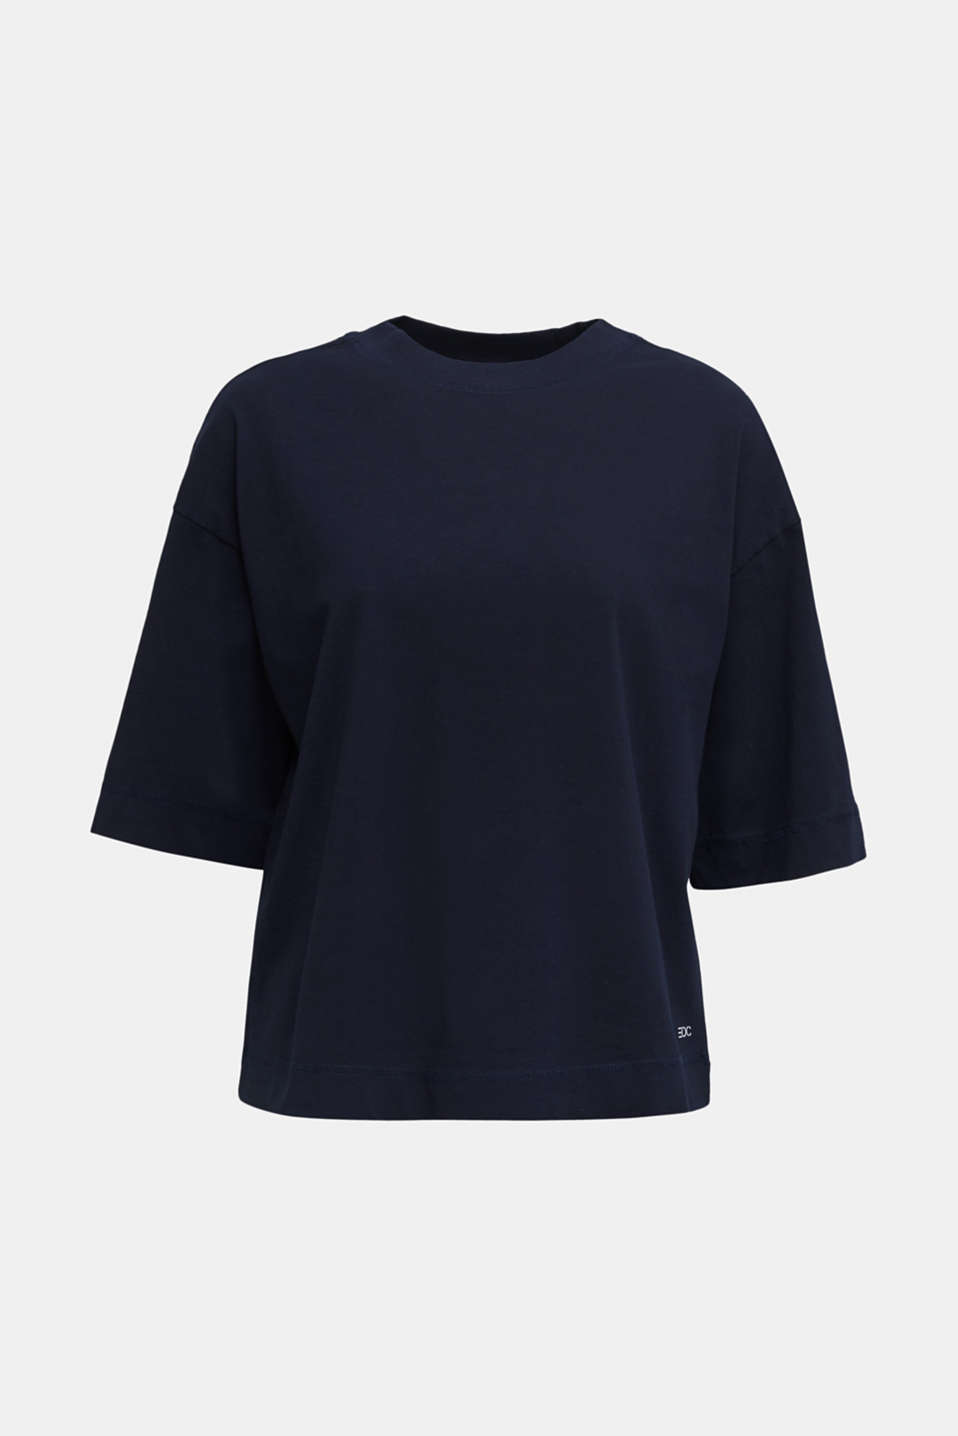 Loose T-shirt in 100% cotton, NAVY, detail image number 7